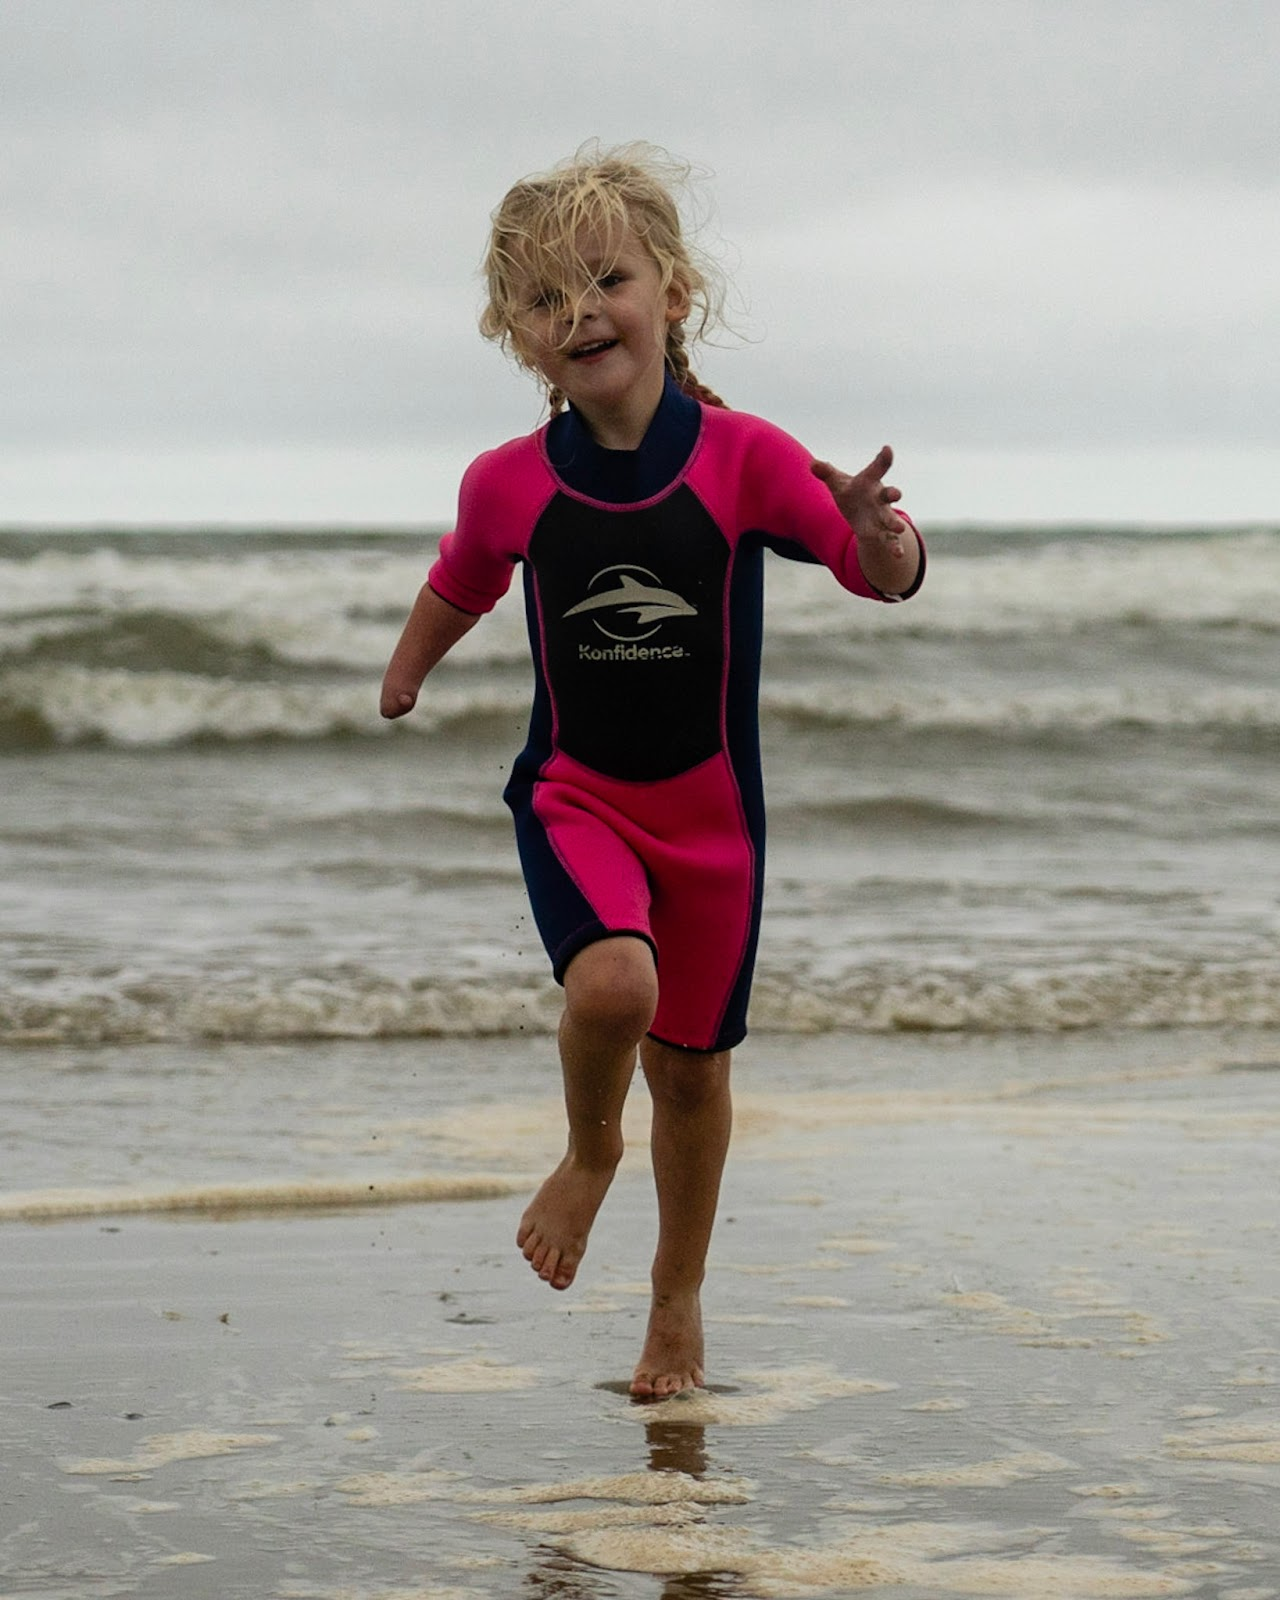 wetsuits for kids, childrens wetsuits, konfidence swimwear